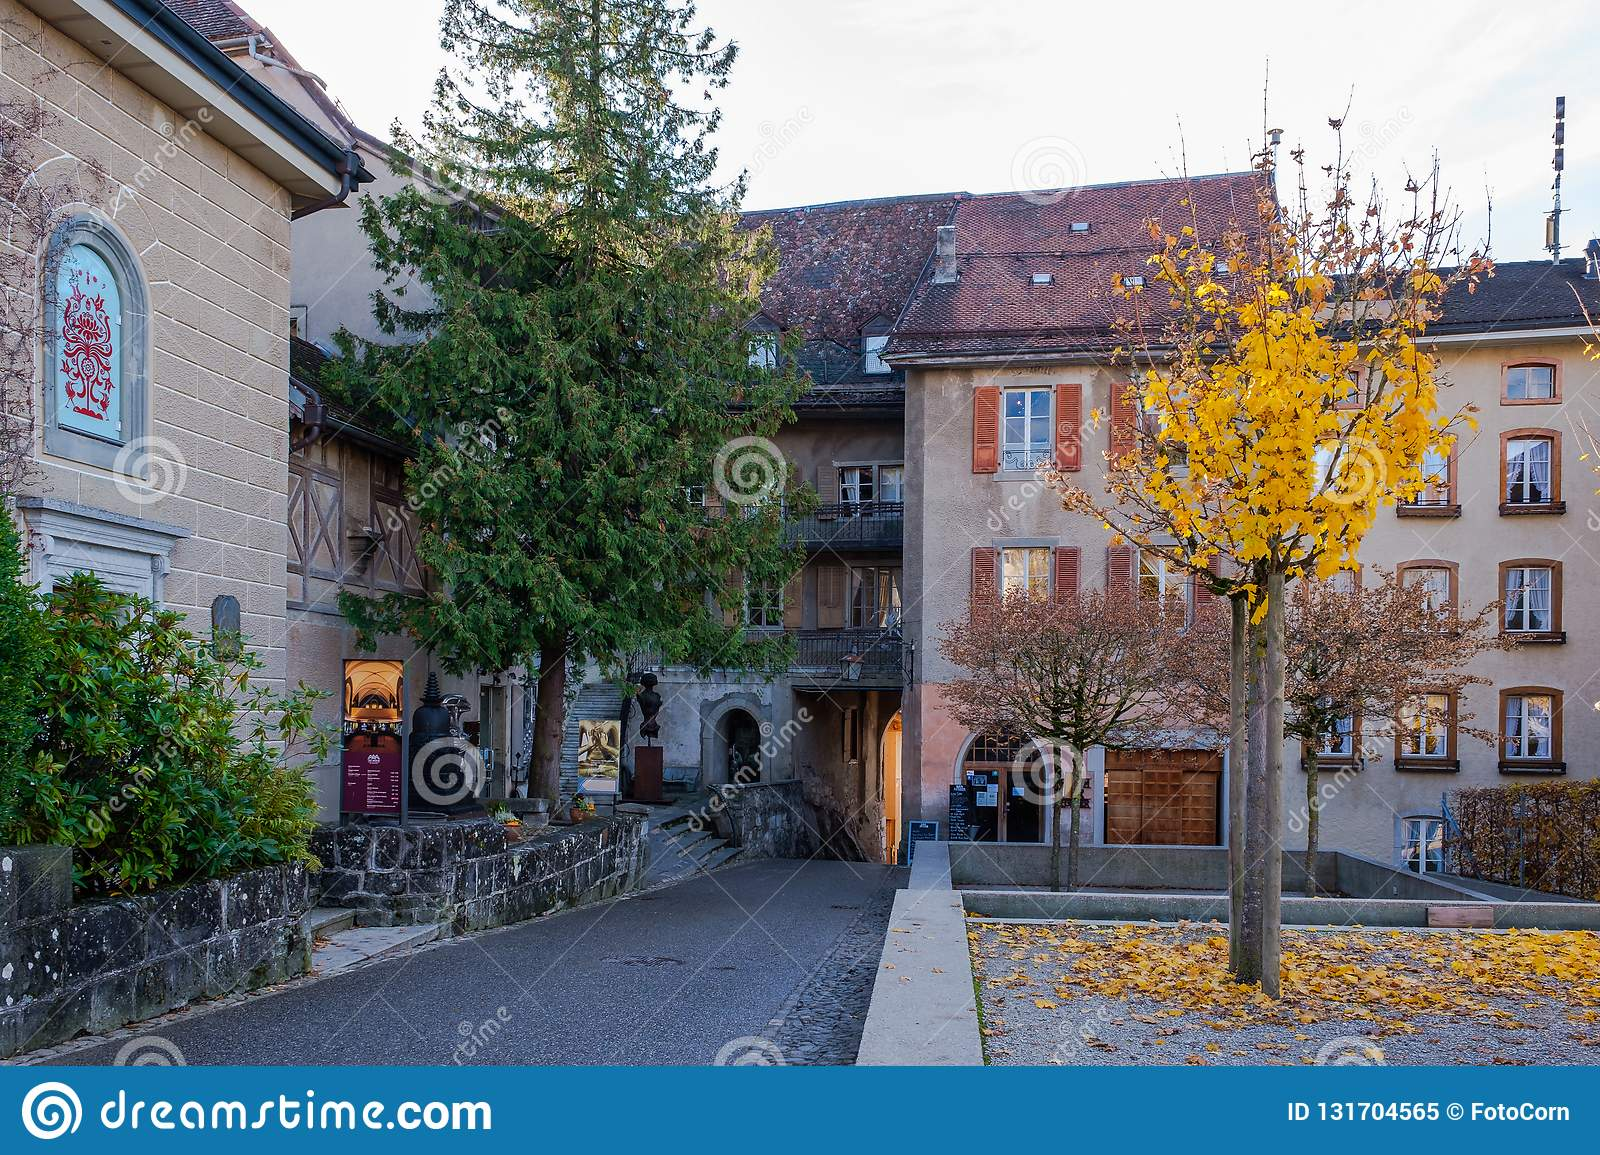 Old medieval road to the castle in Gruyeres, Switzerland in autumn.